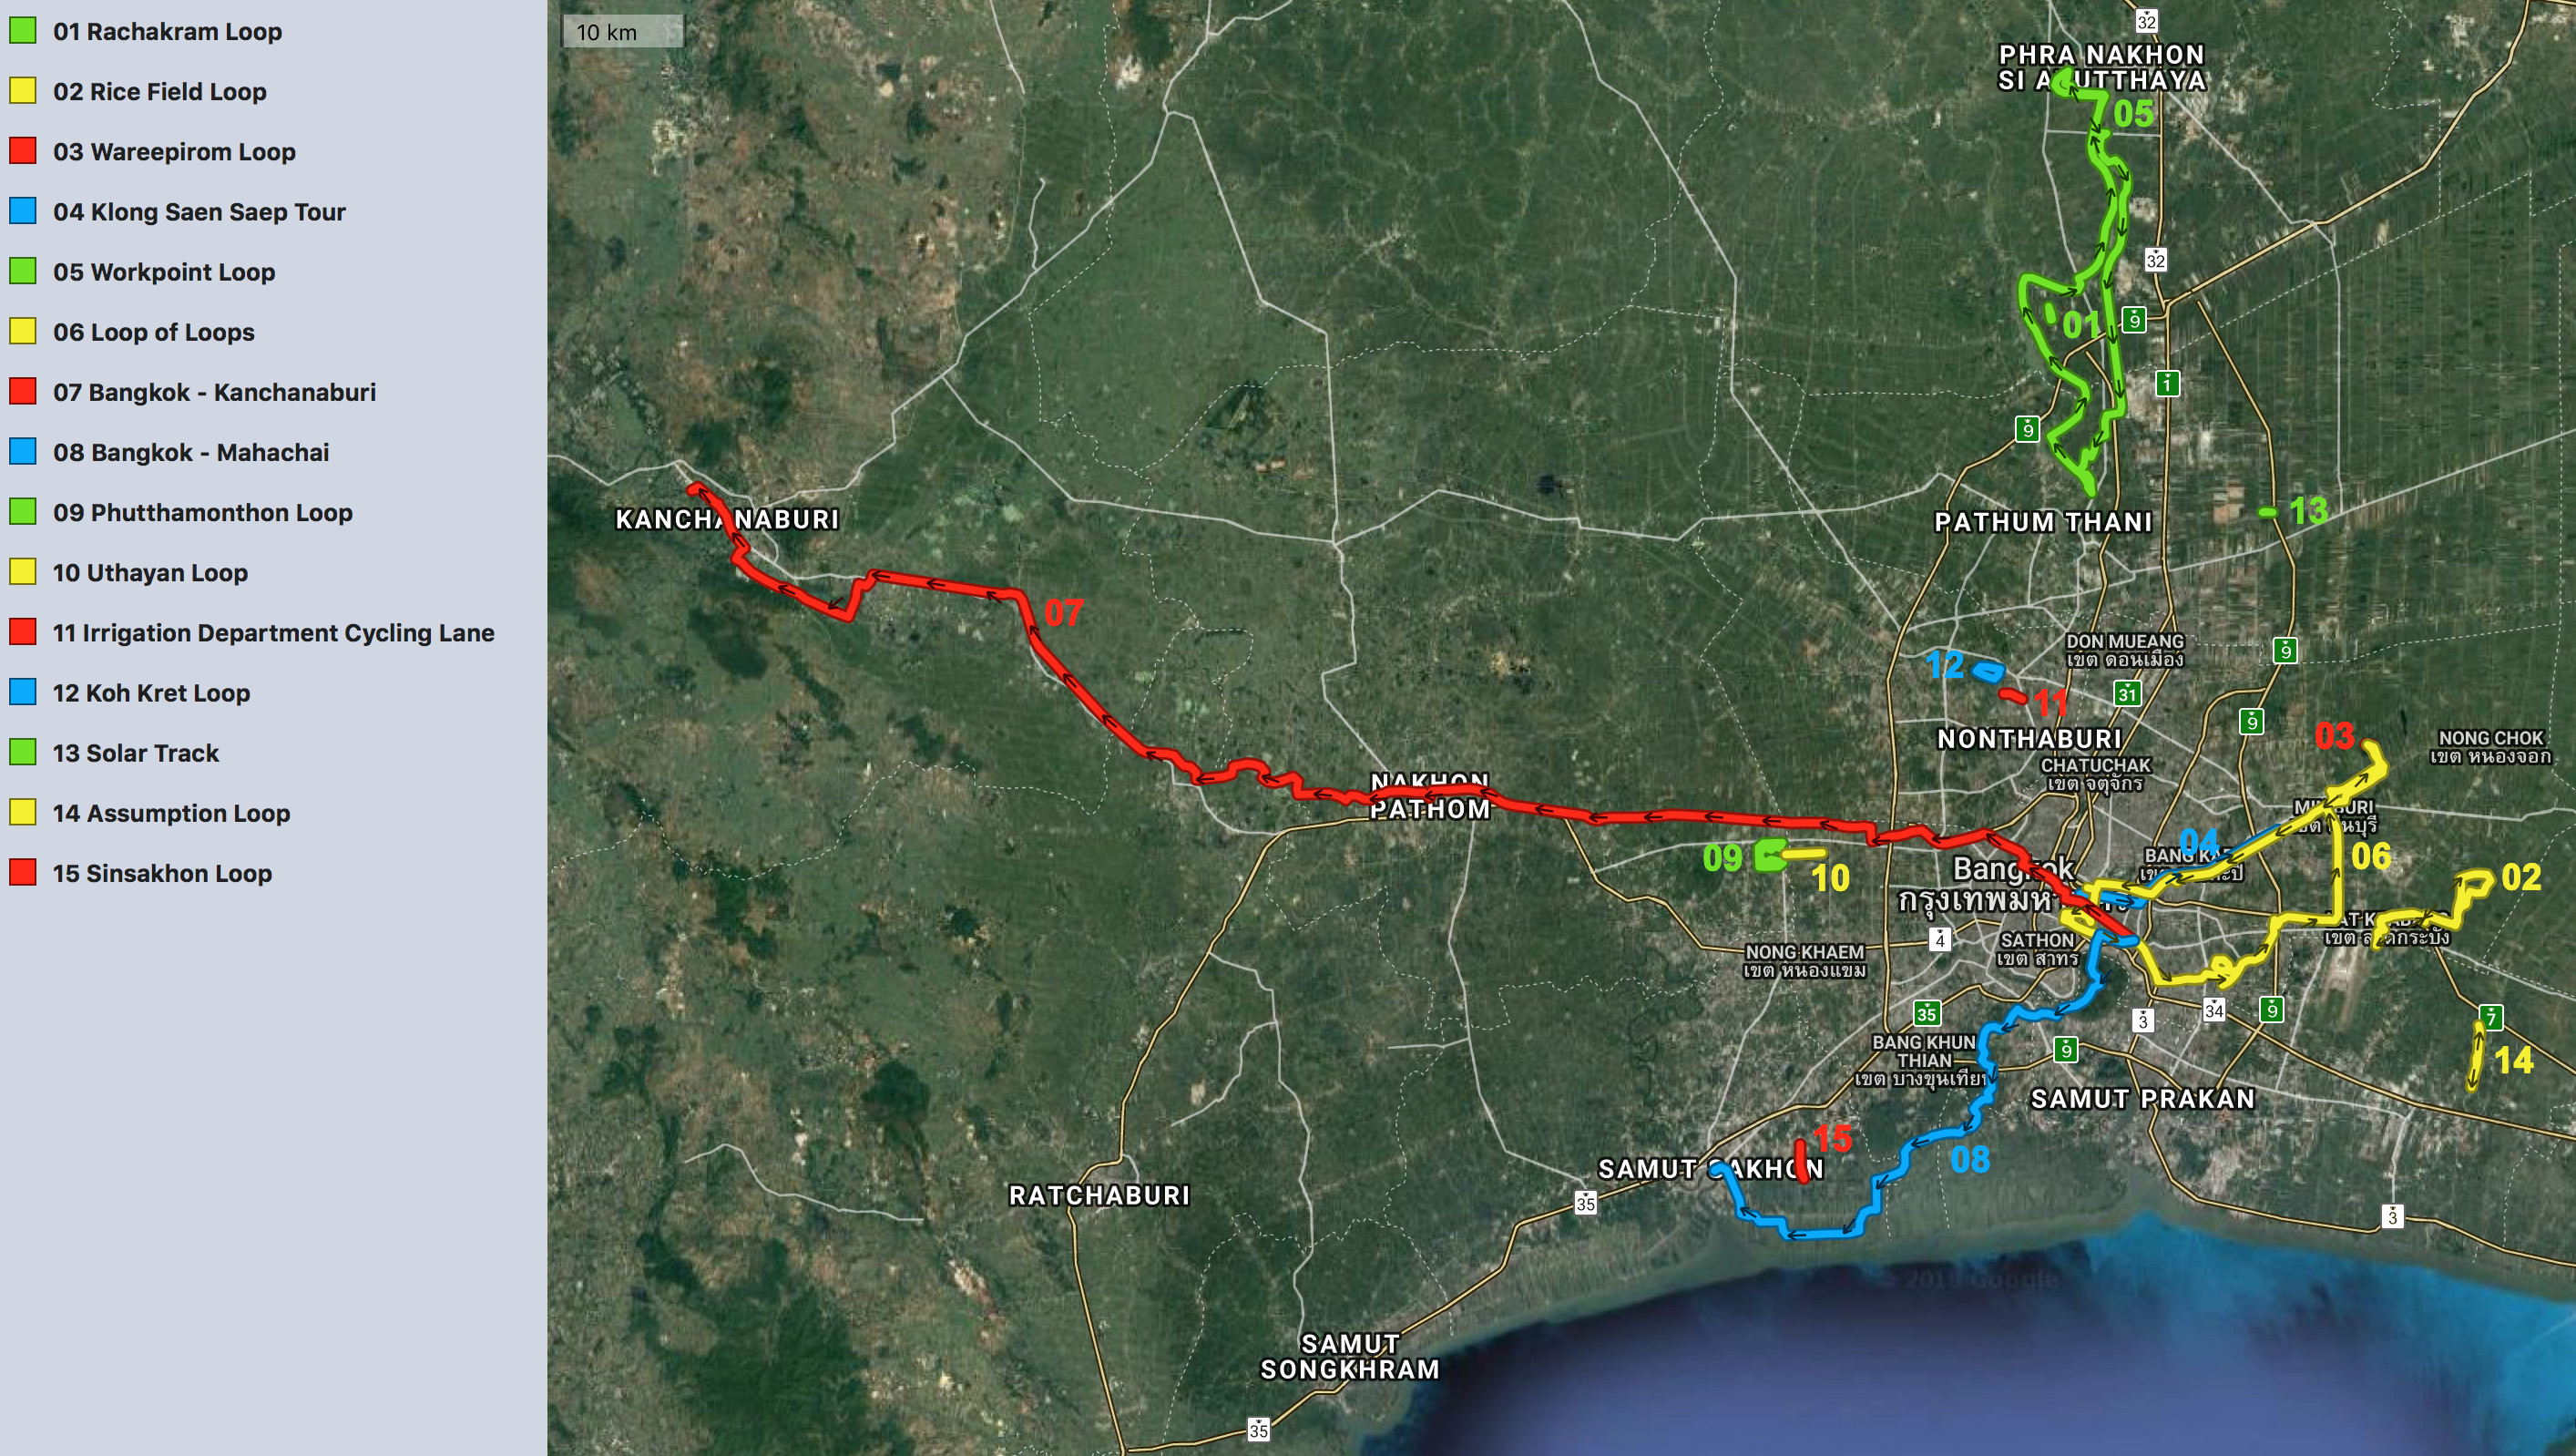 Overview of cycling routes around Bangkok